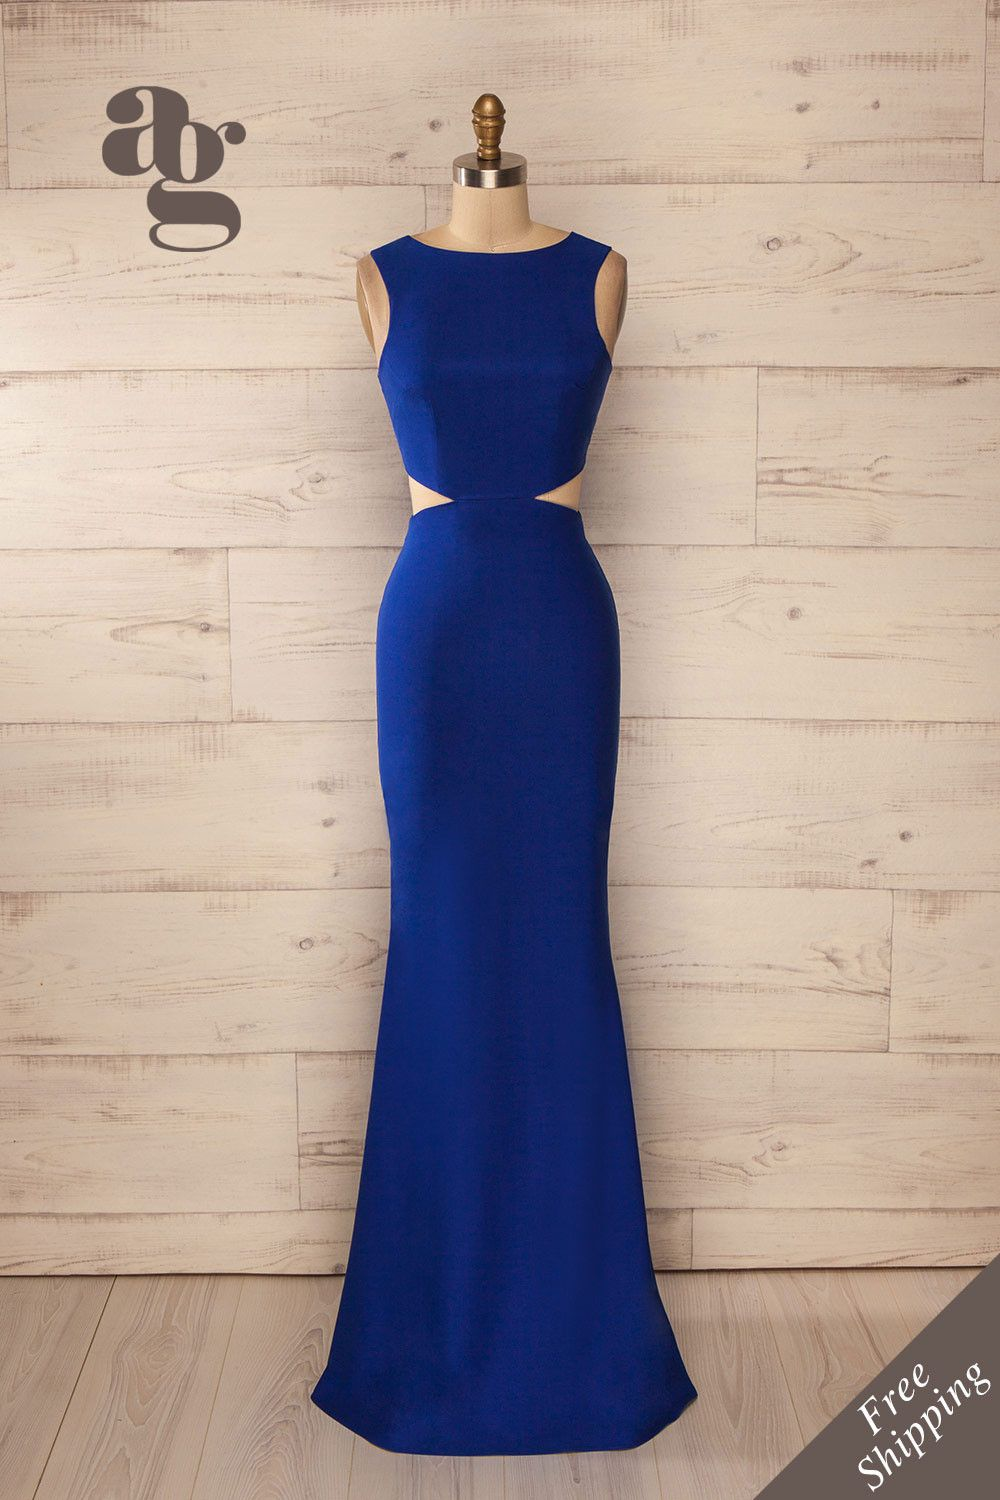 4c2b507d30015 Robe longue soirée bleu royal découpes taille ajustée - Evening maxi fitted  waist cut-outs solid deep blue dress